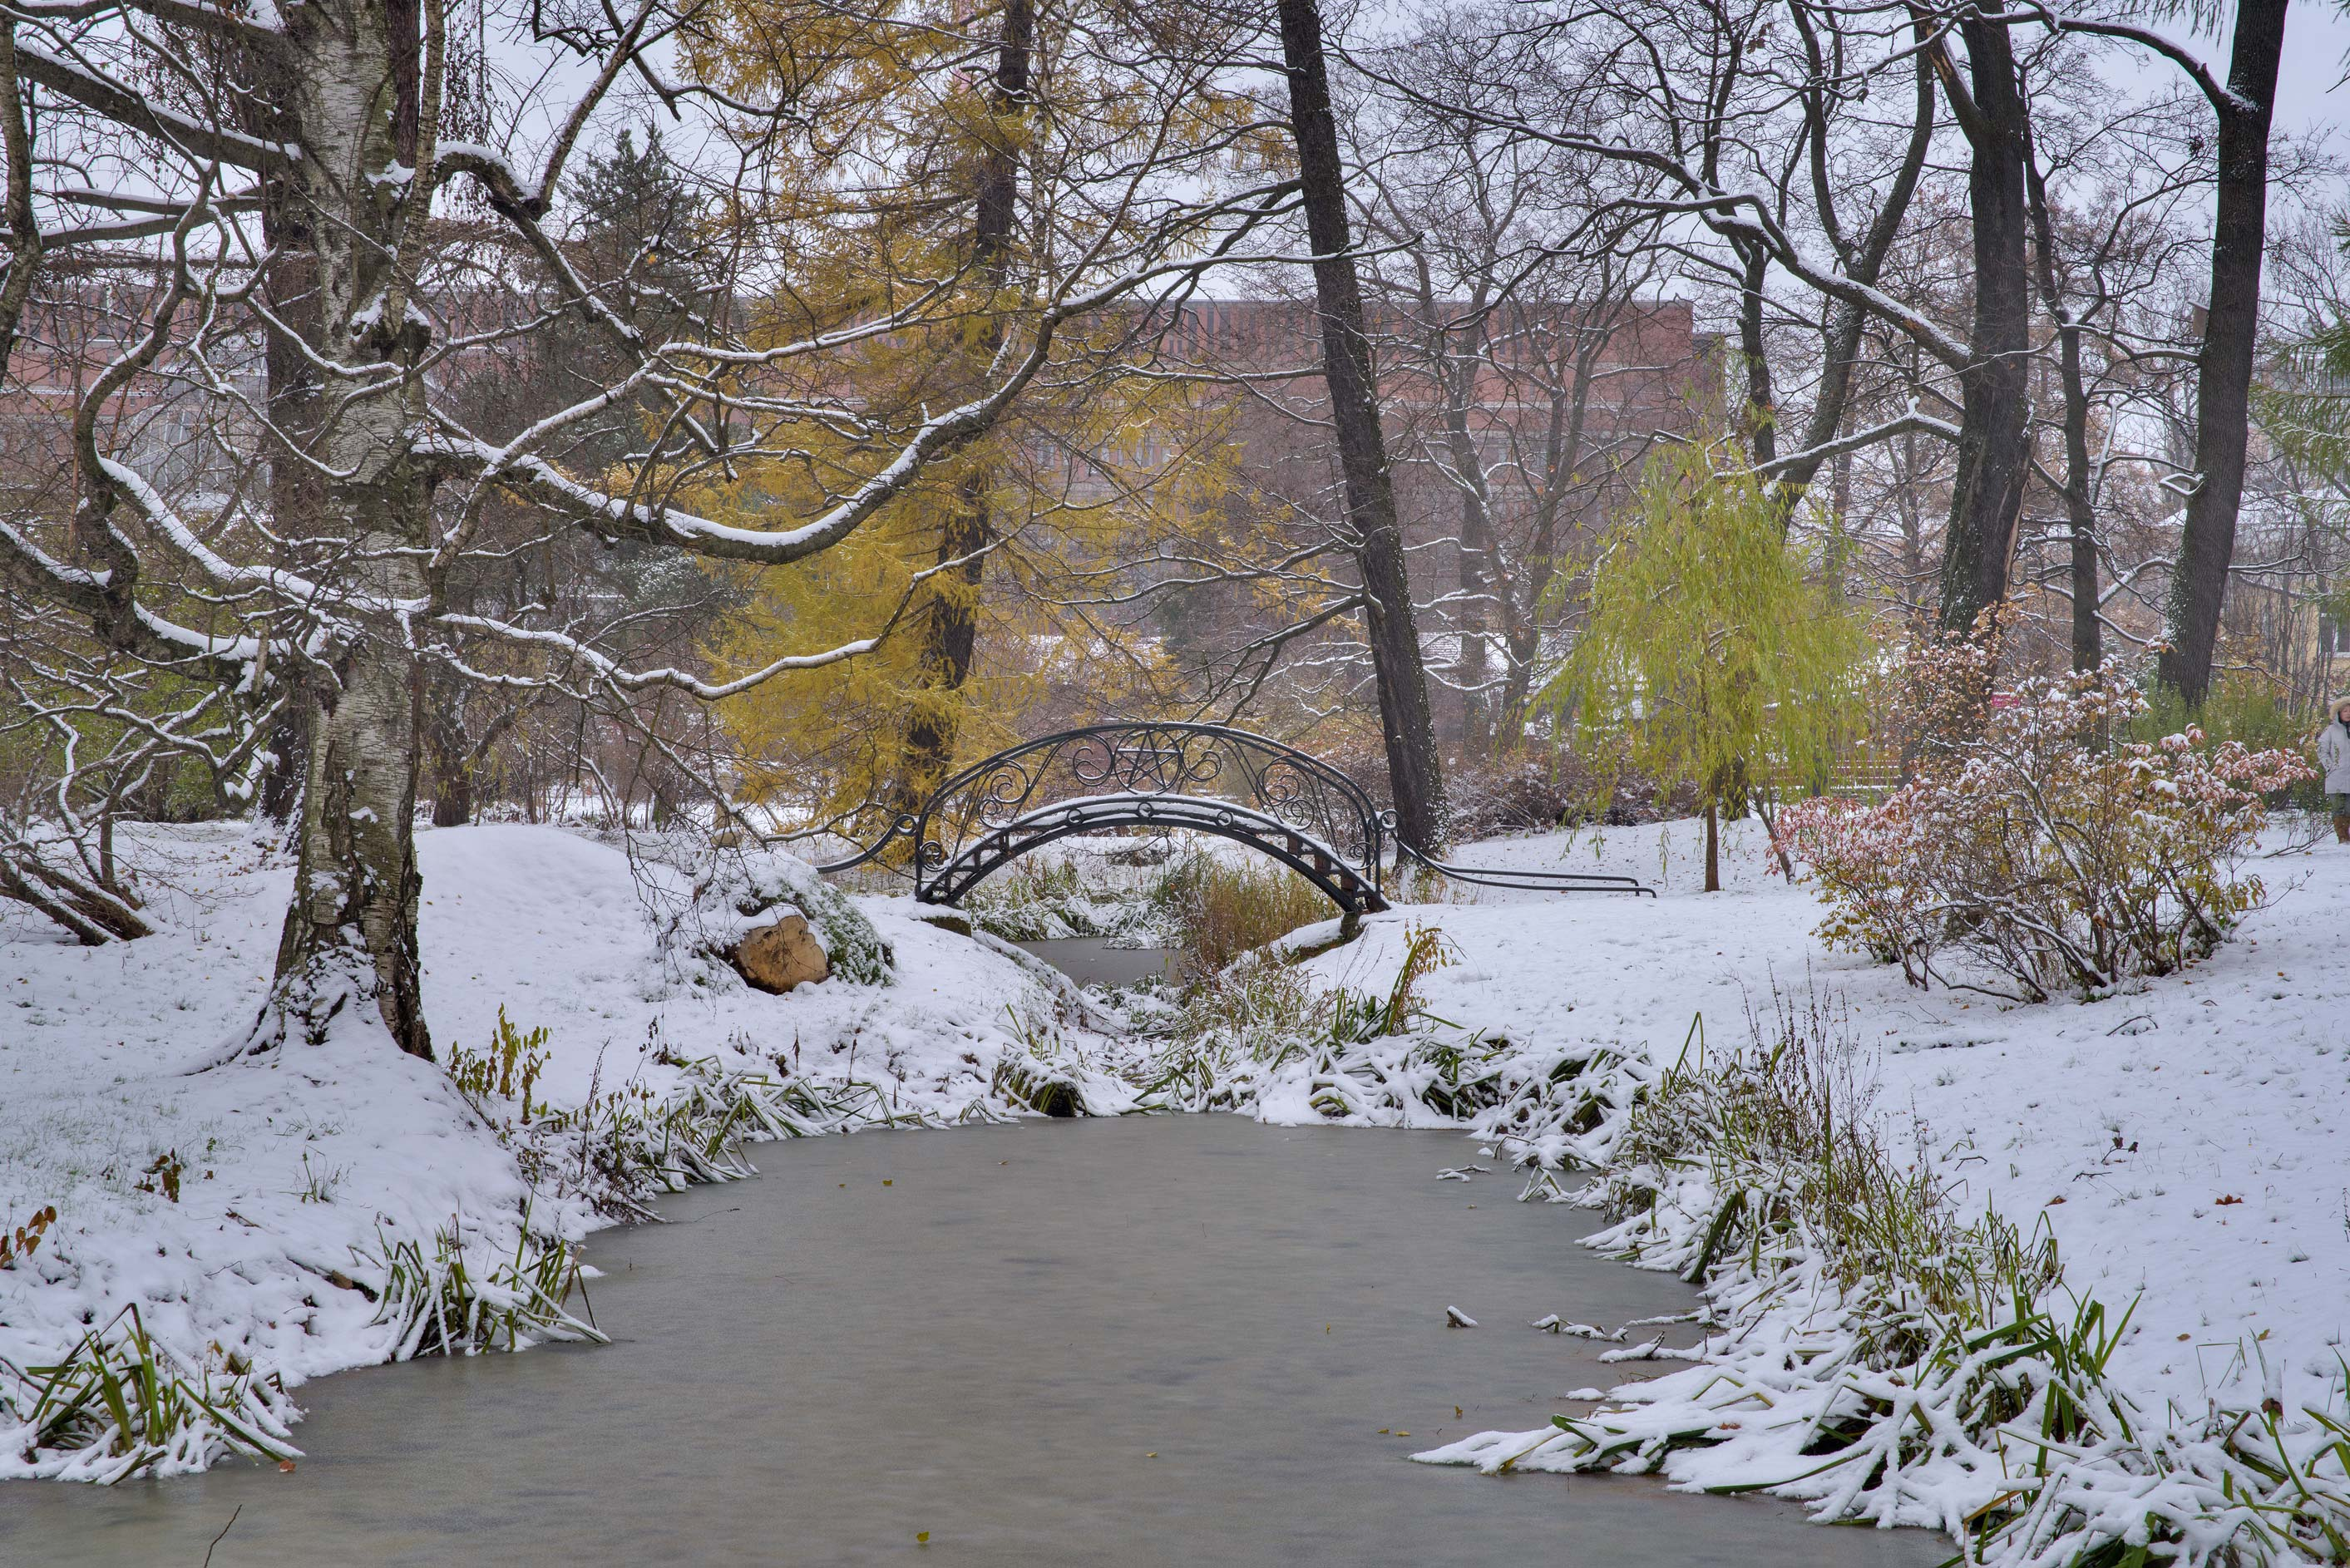 Humpy iron bridge in snow in Botanic Gardens of...Institute. St.Petersburg, Russia